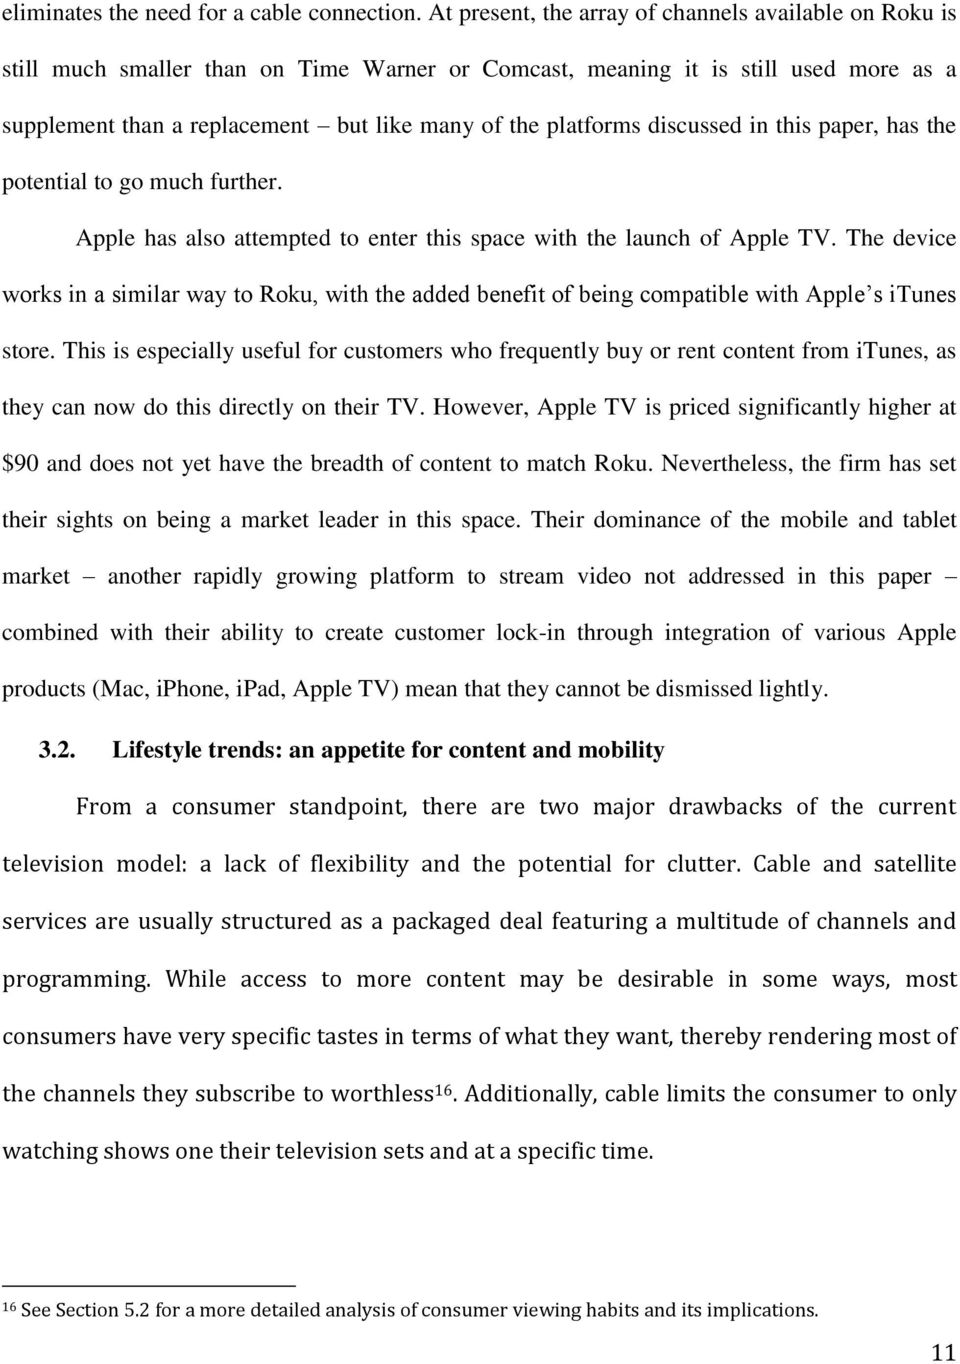 platforms discussed in this paper, has the potential to go much further. Apple has also attempted to enter this space with the launch of Apple TV.